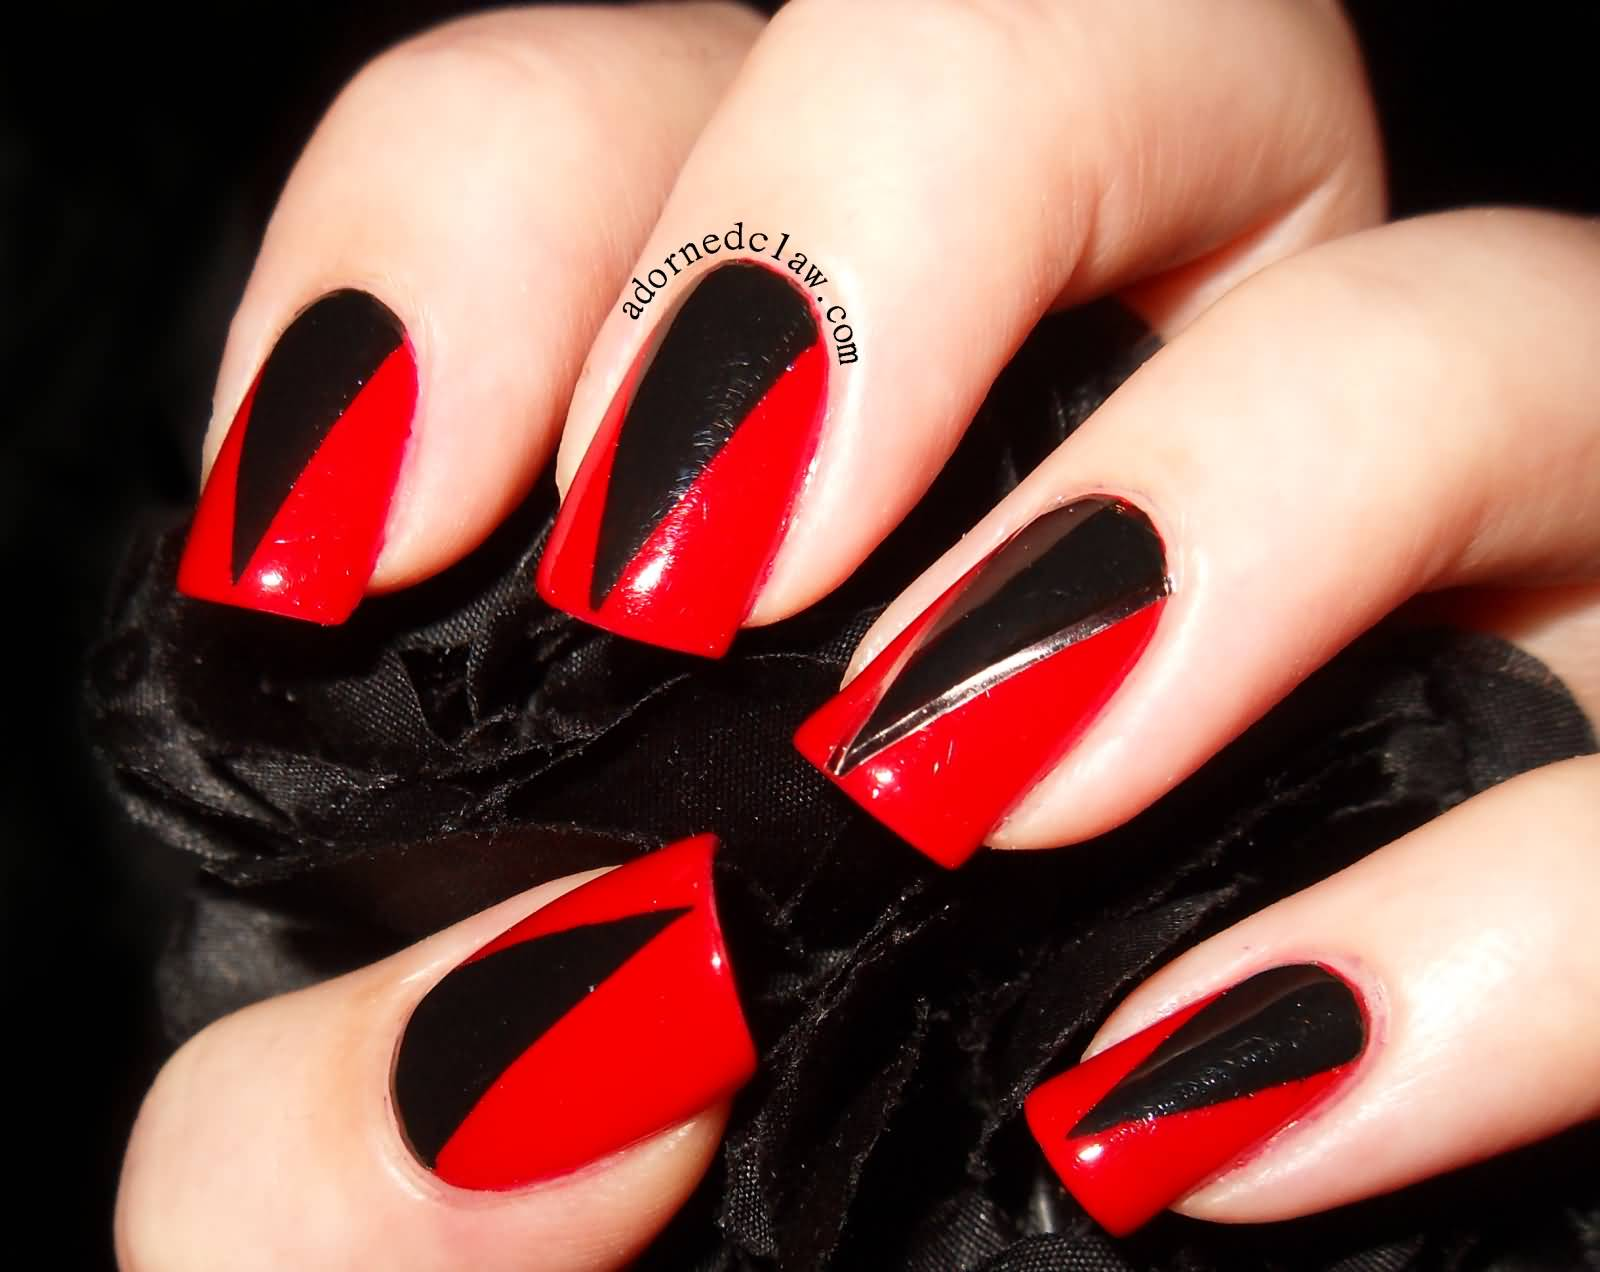 Awesome Red And Black Nails With Sharp V Design On Nail Published January 23 2017 At 1600 1272